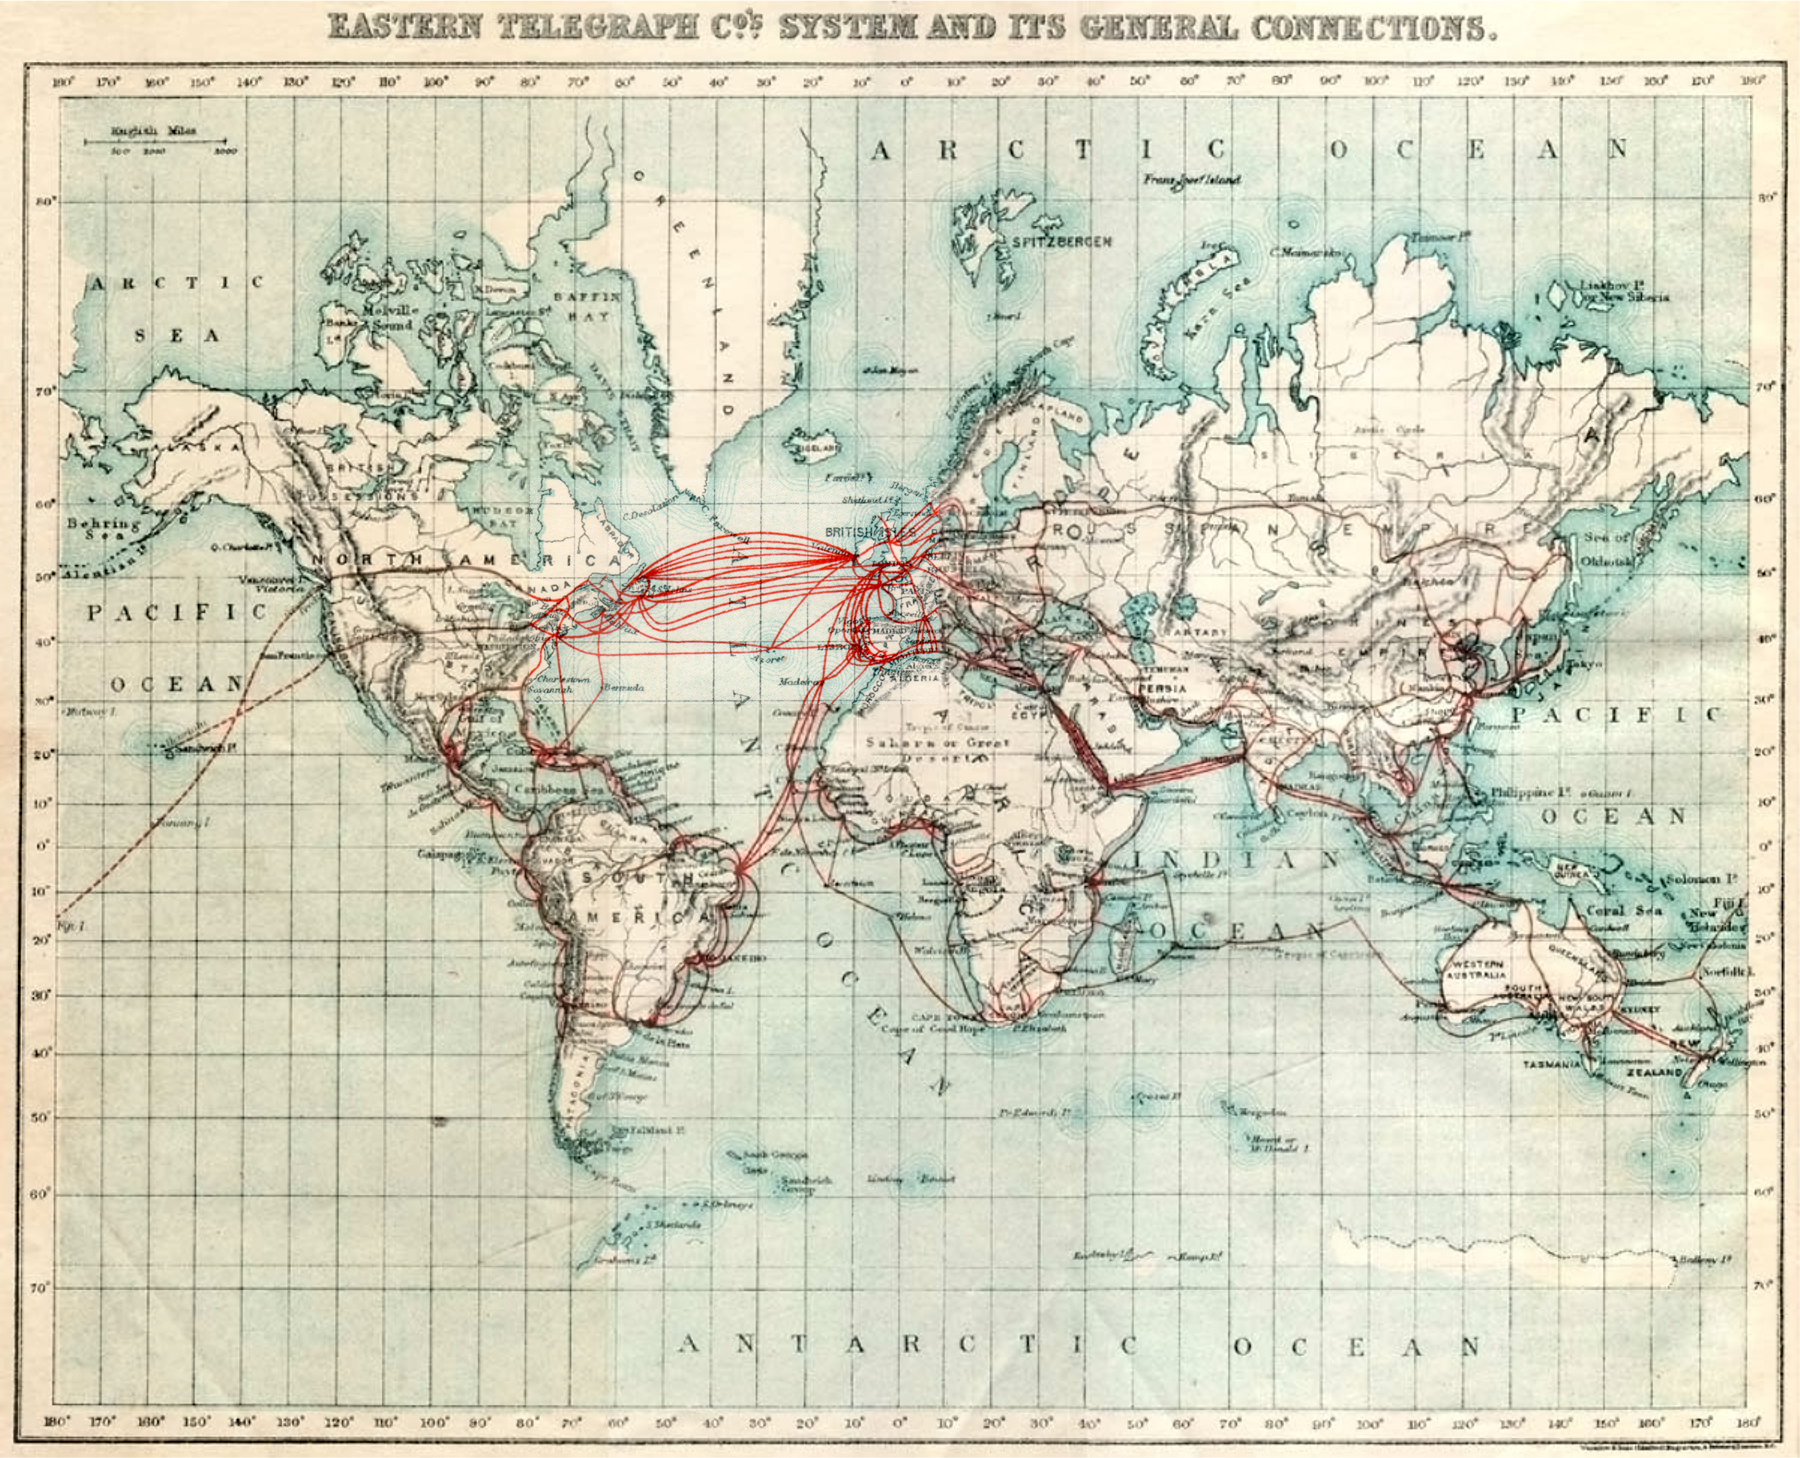 Telegraph cables in 1901